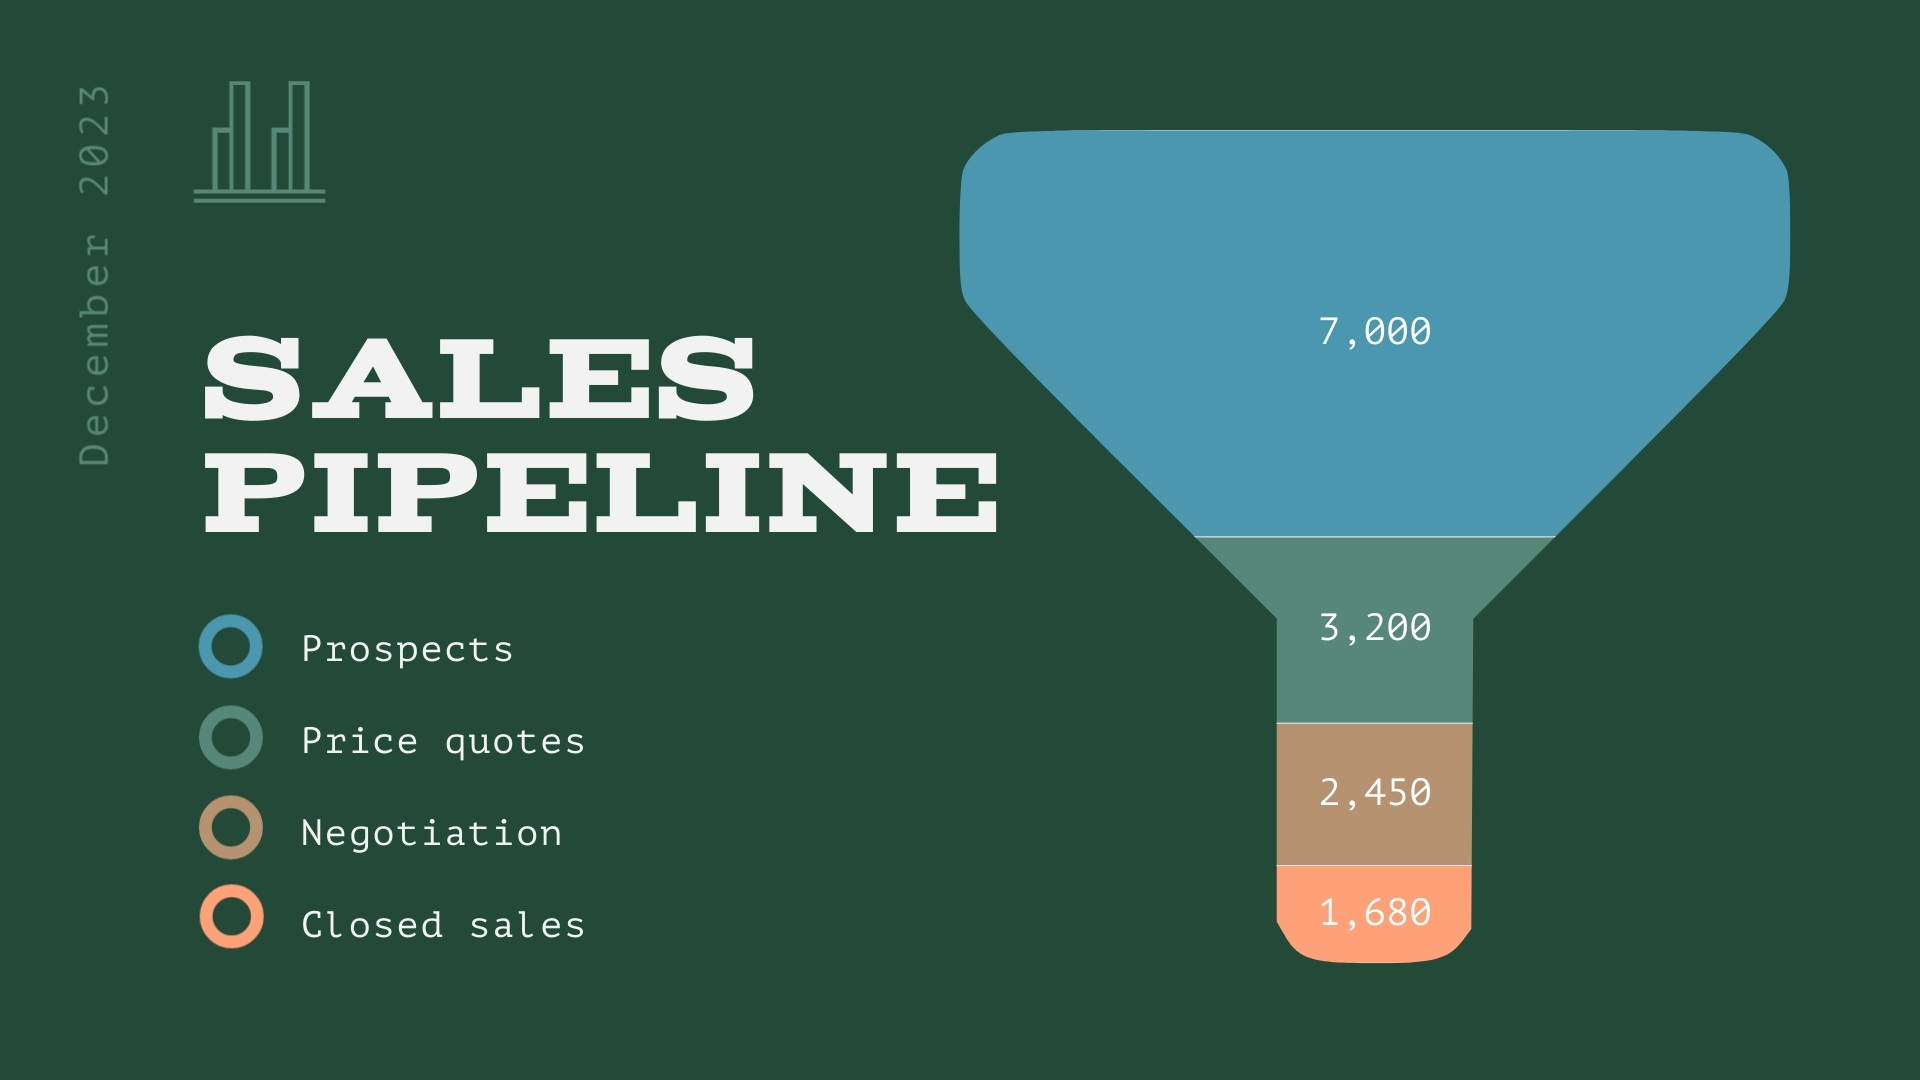 Sales Pipeline Funnel Chart Template